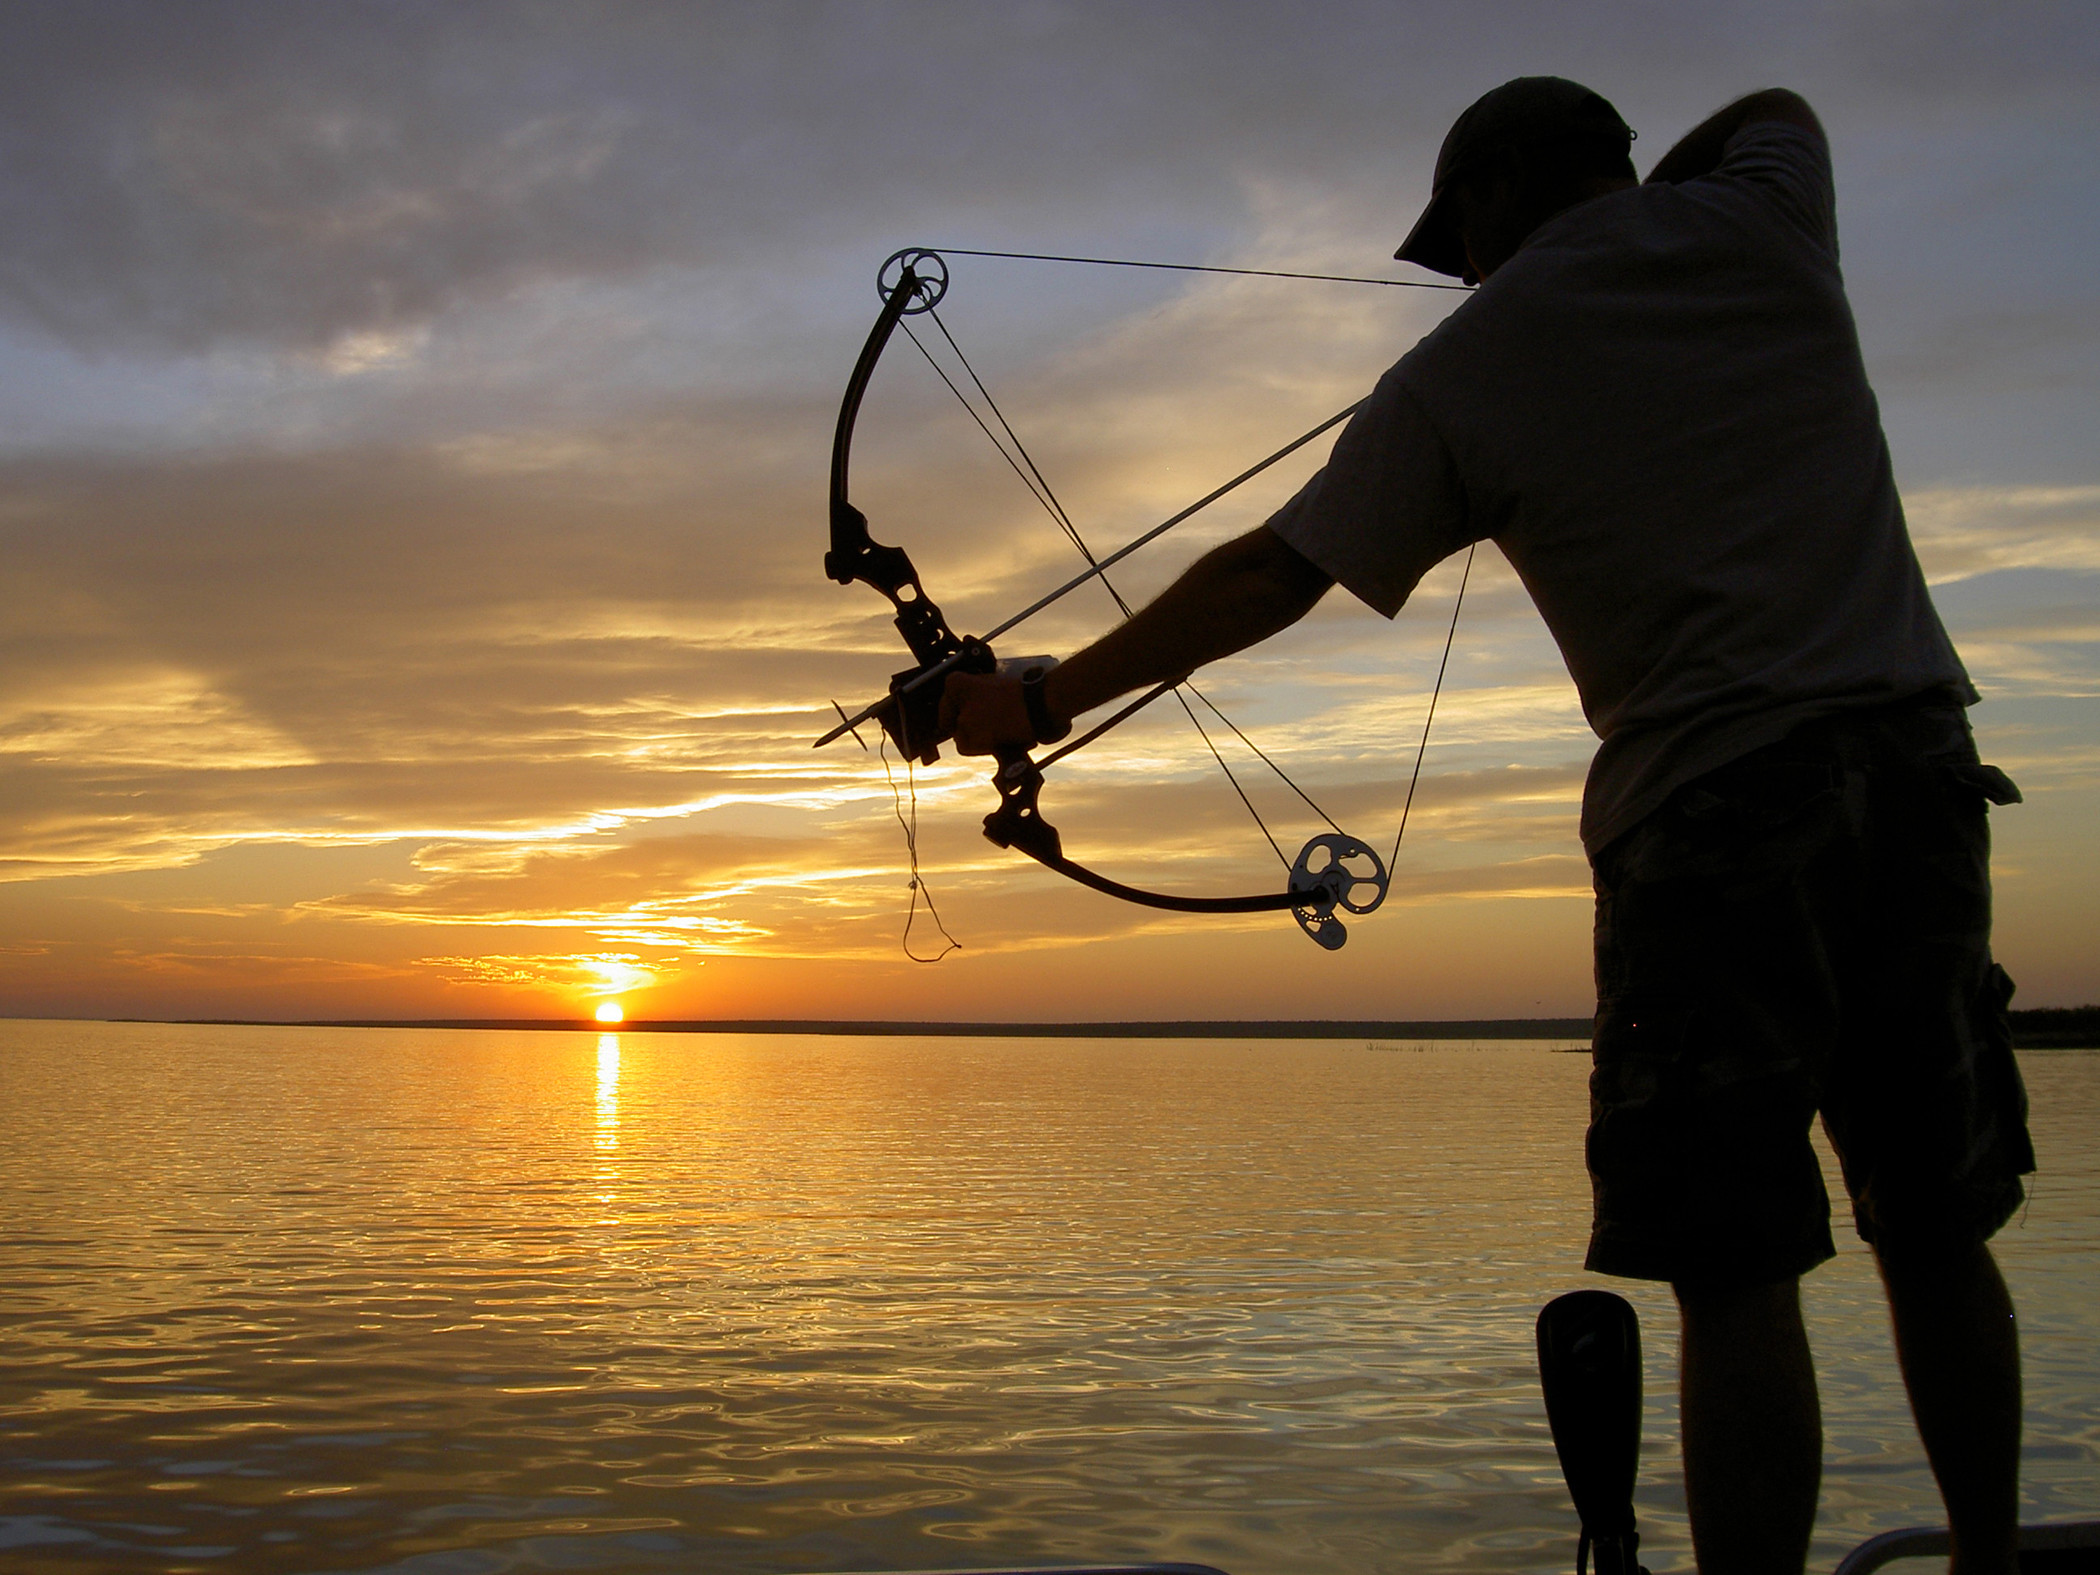 Bowfishing for Carp – Hunting or Fishing?